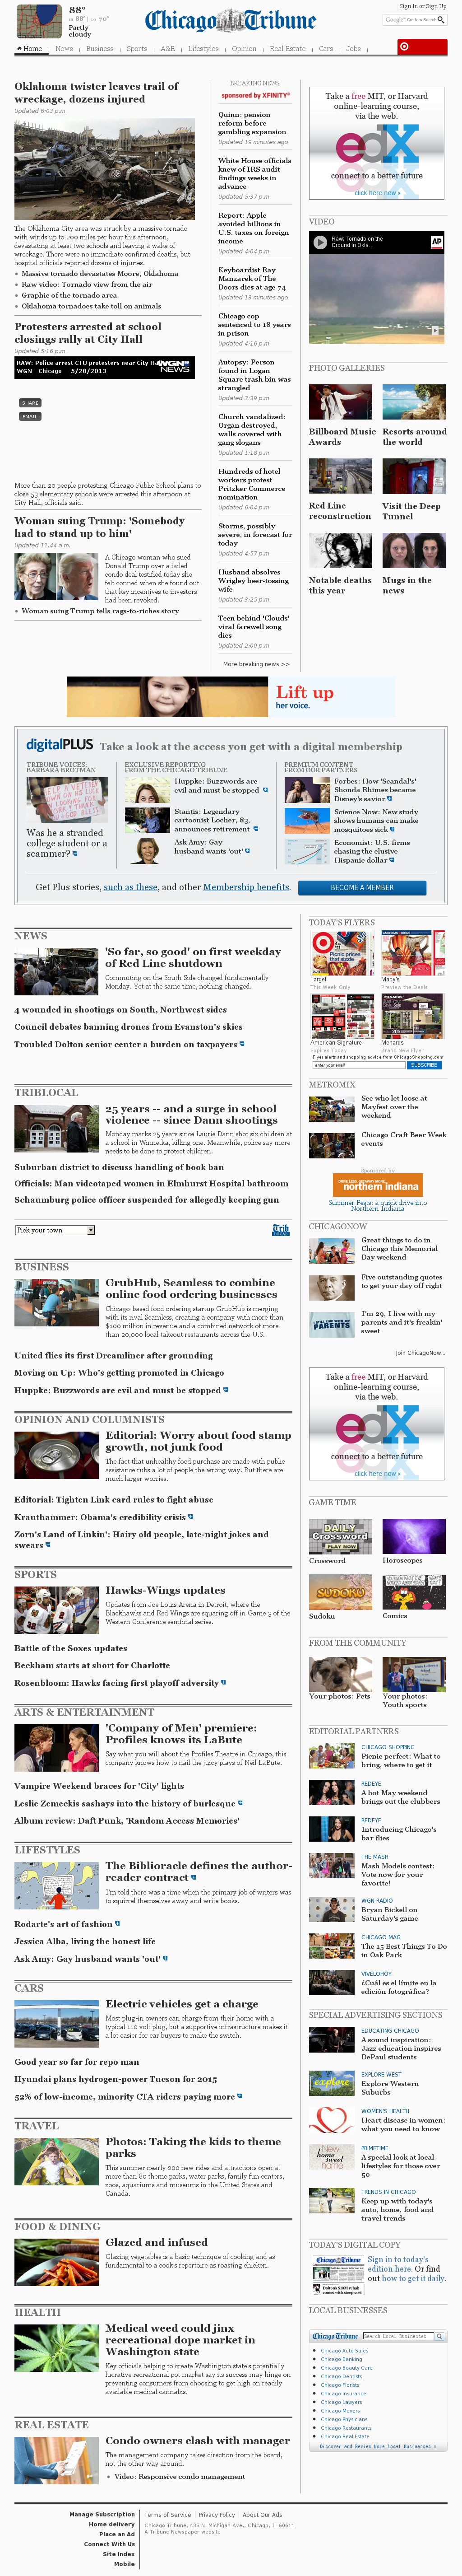 Chicago Tribune at Tuesday May 21, 2013, 12:03 a.m. UTC